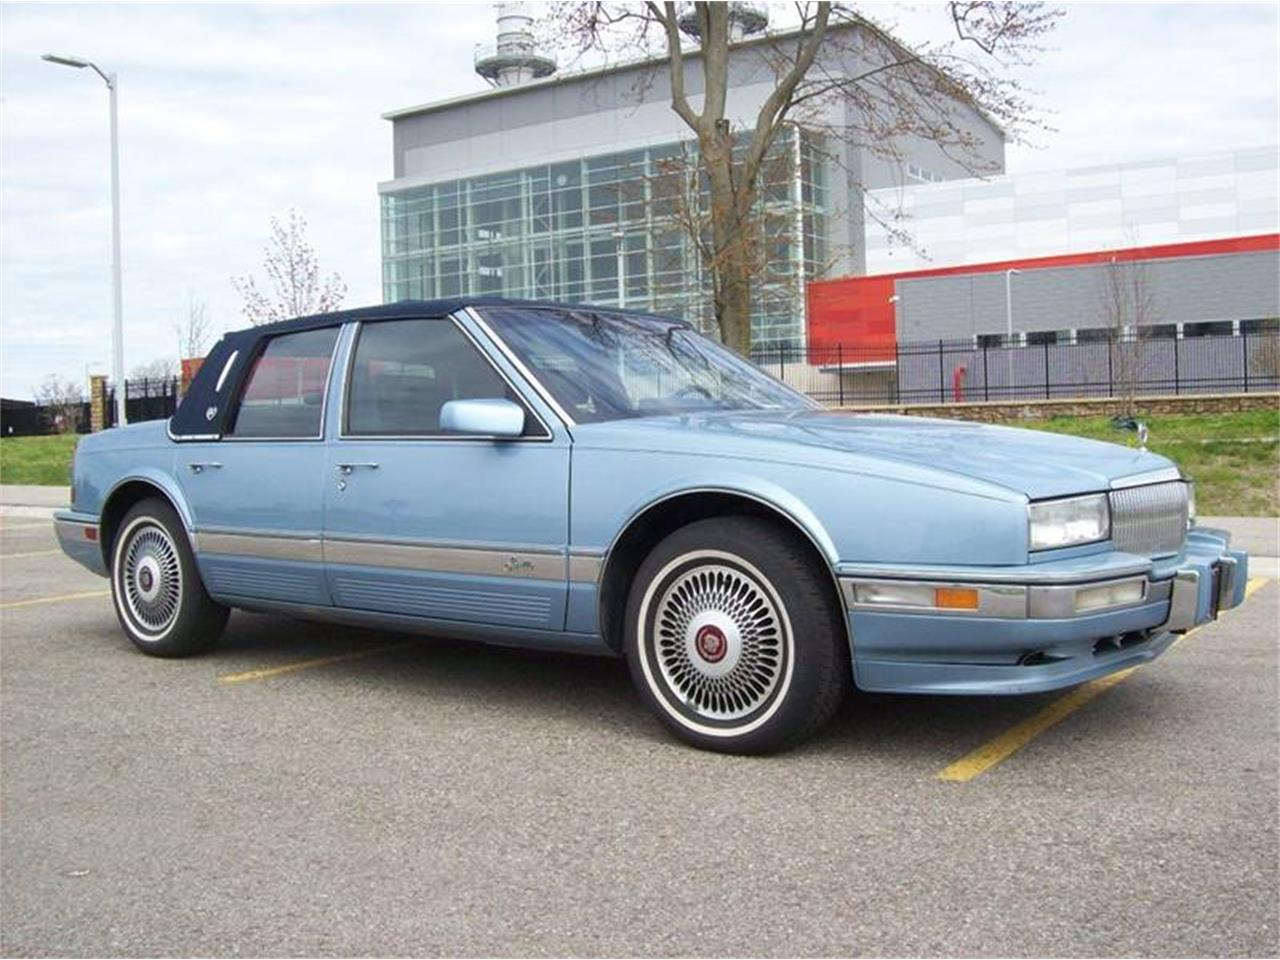 1991 cadillac seville for sale classiccars com cc 1215140 1991 cadillac seville for sale